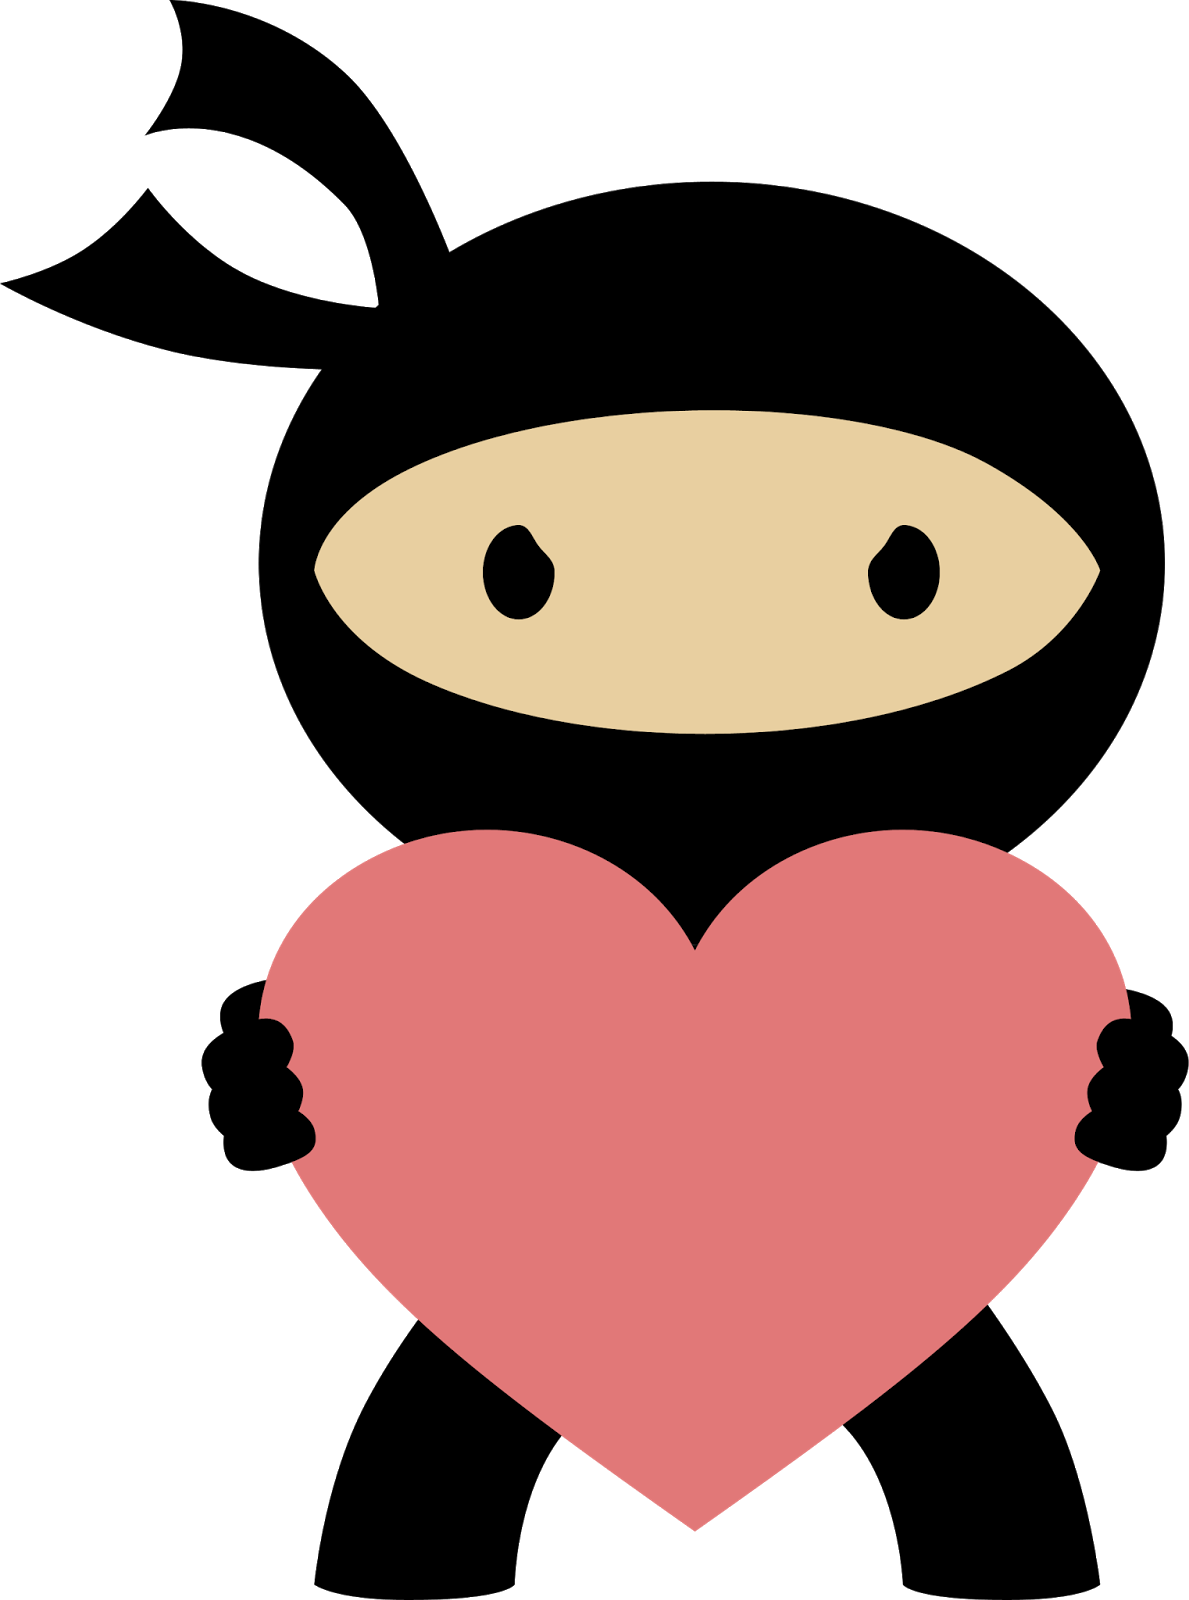 Relax clipart cute. Ninja in love painted